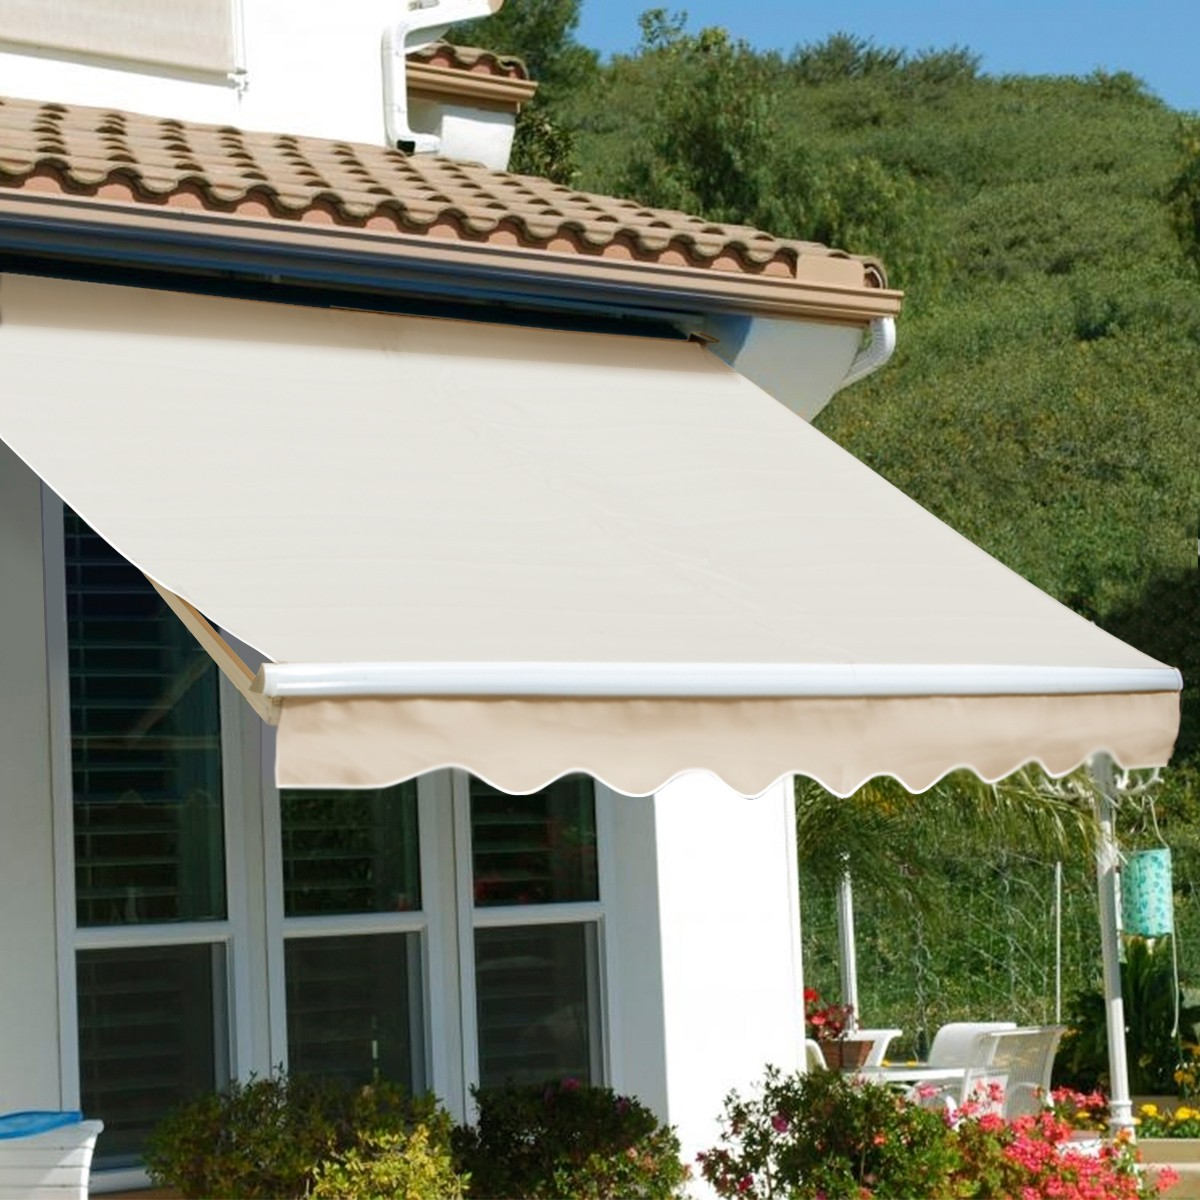 Patio Awning Sun Shade Canopy, Tan, Manual Retractable Deck UV Protection  10x8